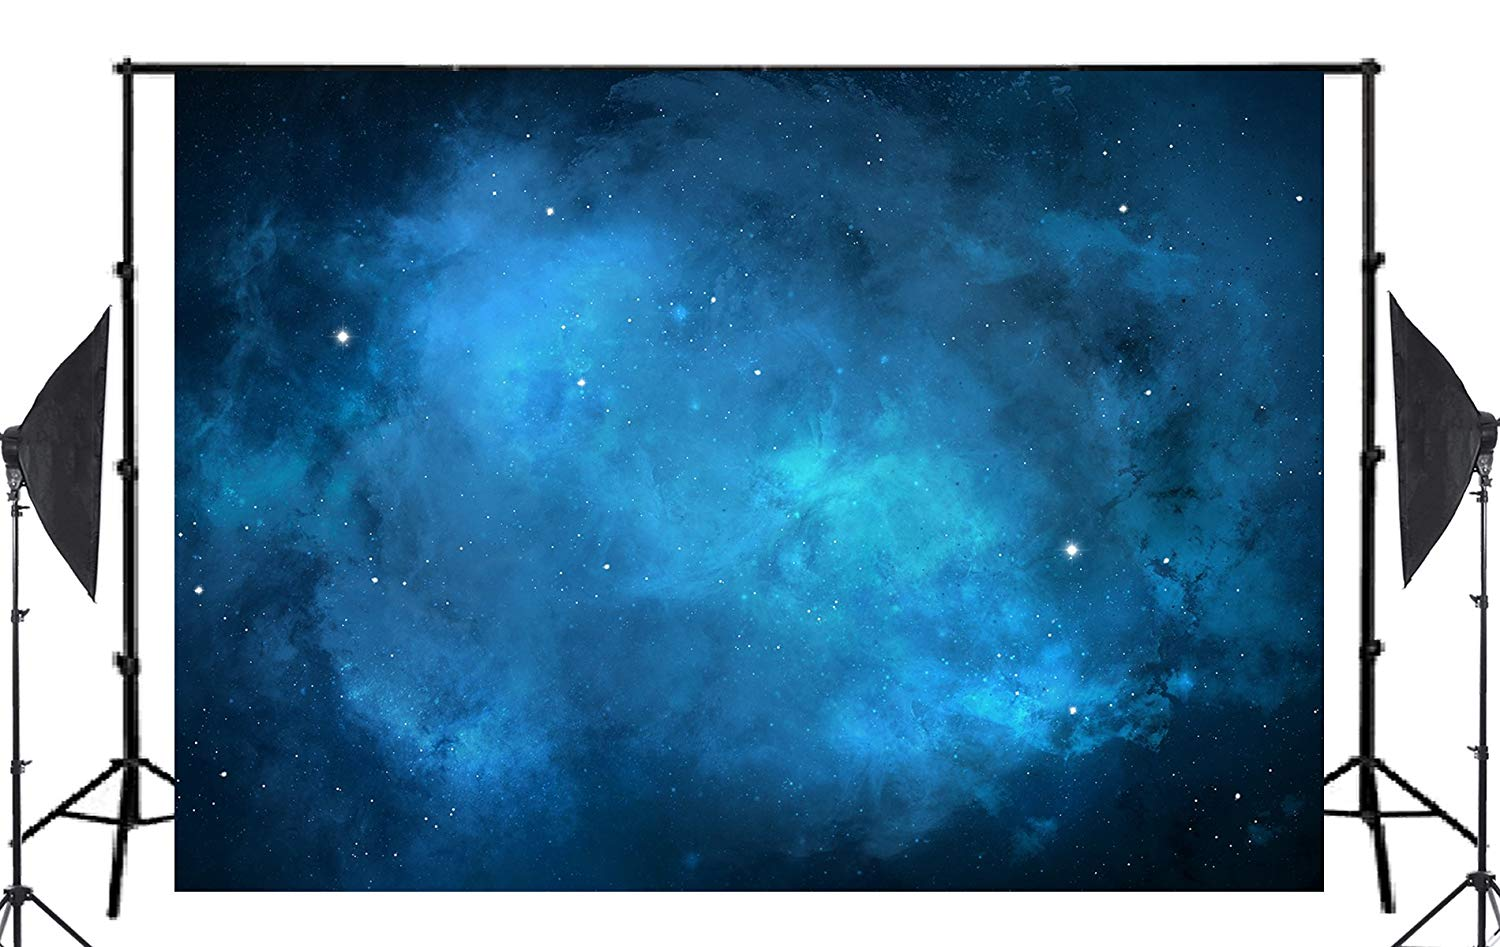 535d69af28d6 ABPHOTO Polyester Abstract Painting Photography Background Dark Blue  Backdrop Art Photo Studio 7x5ft Photography Backdrop Indoor